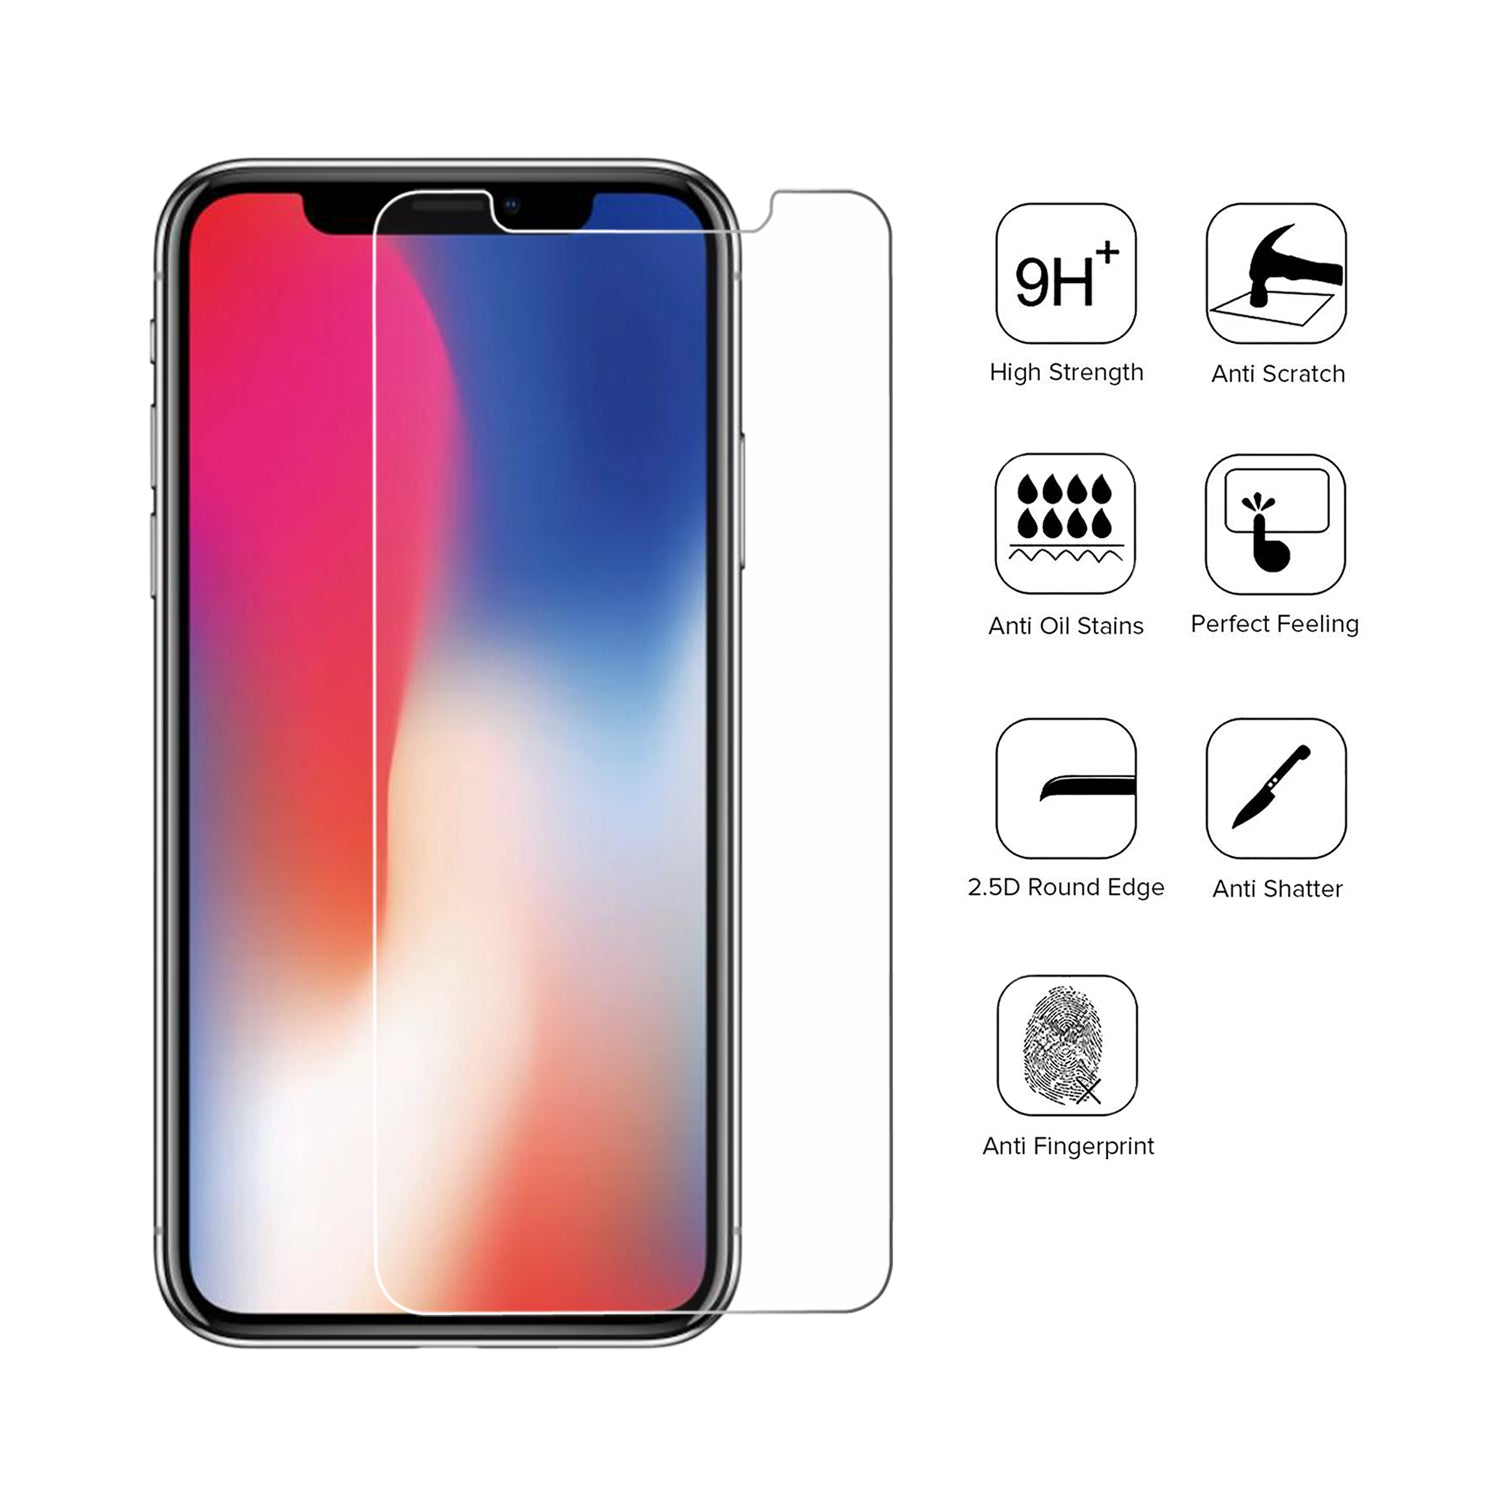 iPhone X Glass Screen Protector - 3 Pack [Shipping to US Only]